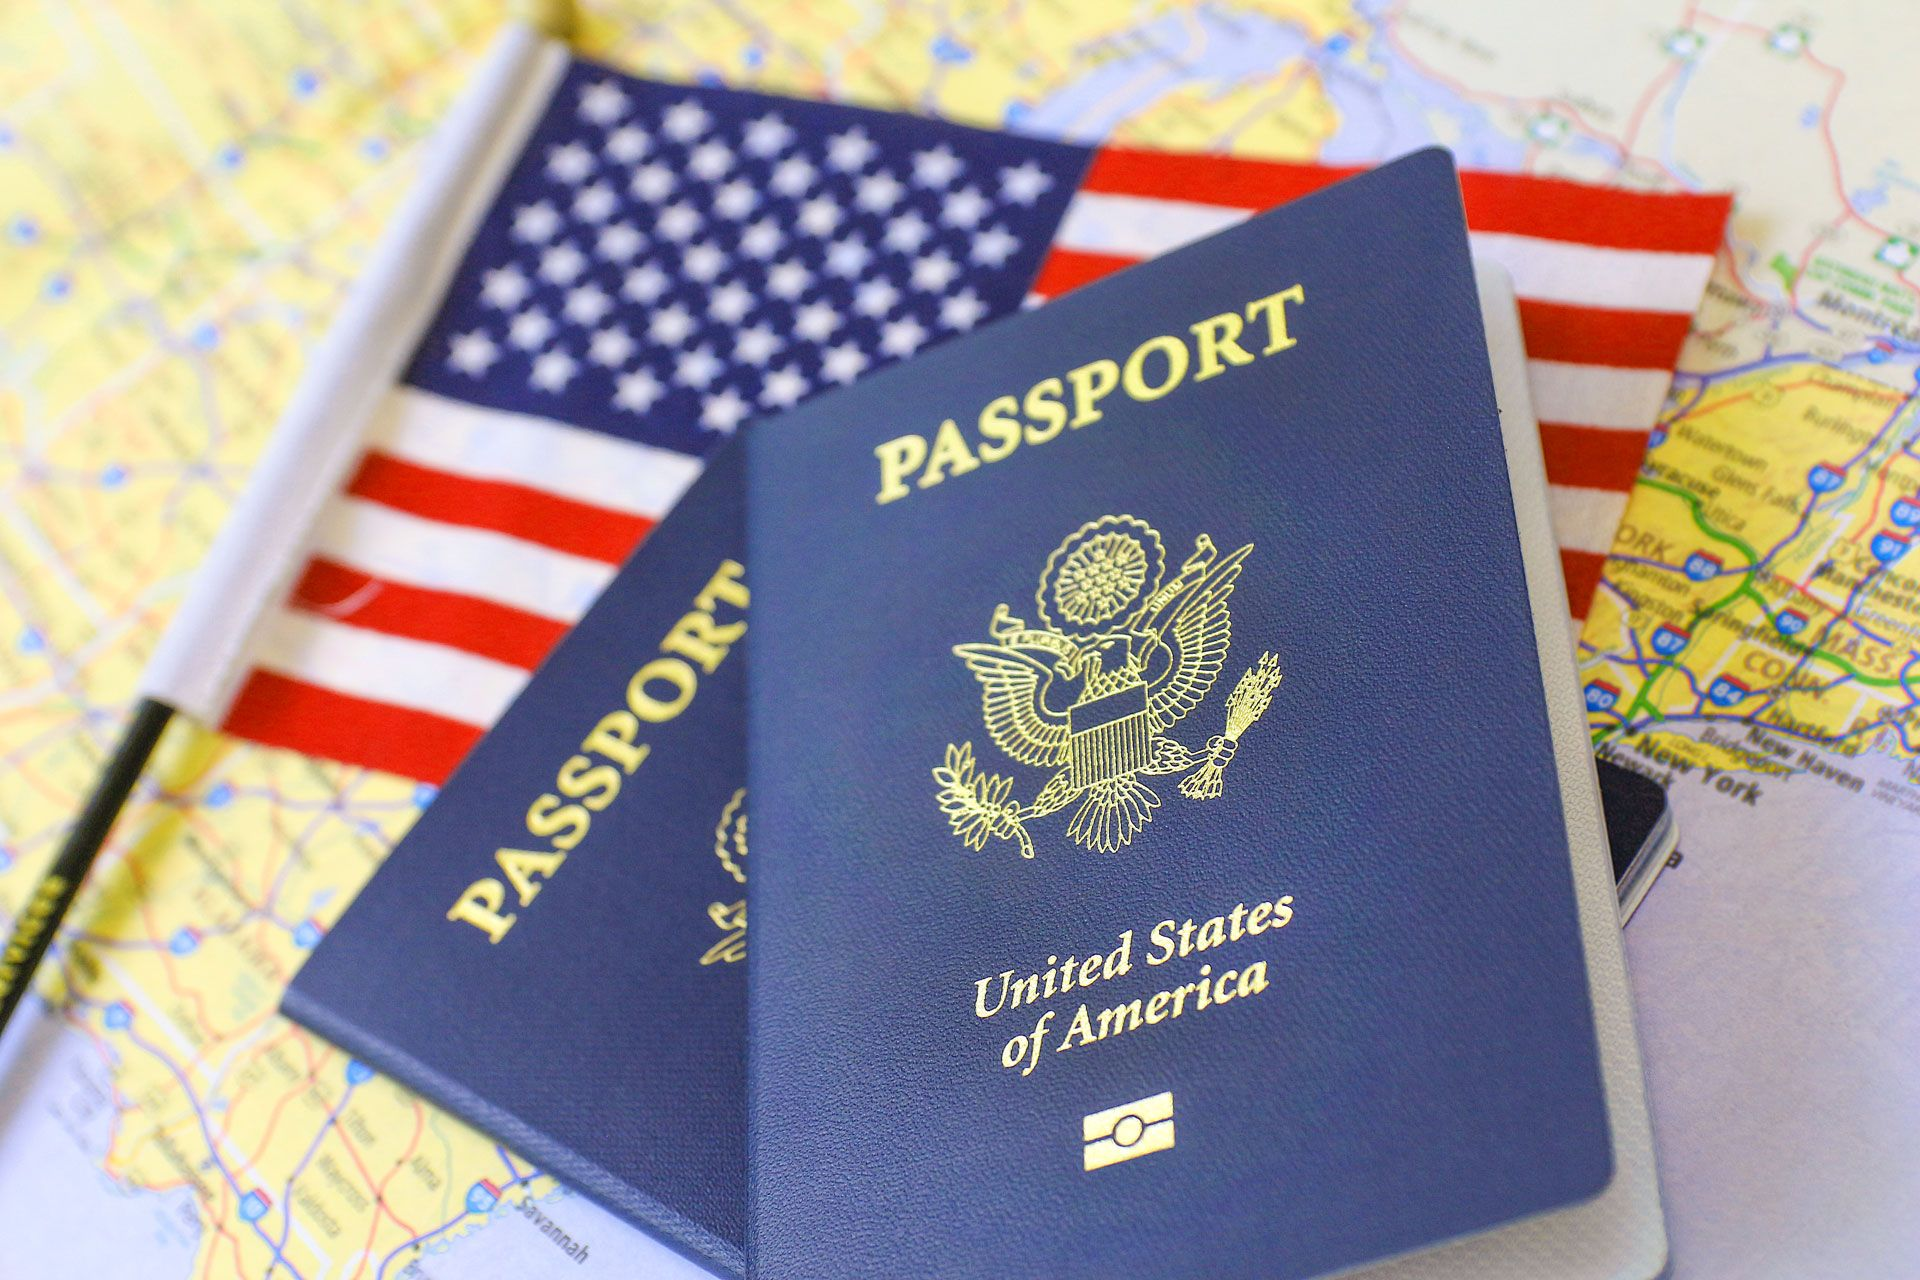 Do You Need A Passport To Visit The Bahamas As US Citizen?